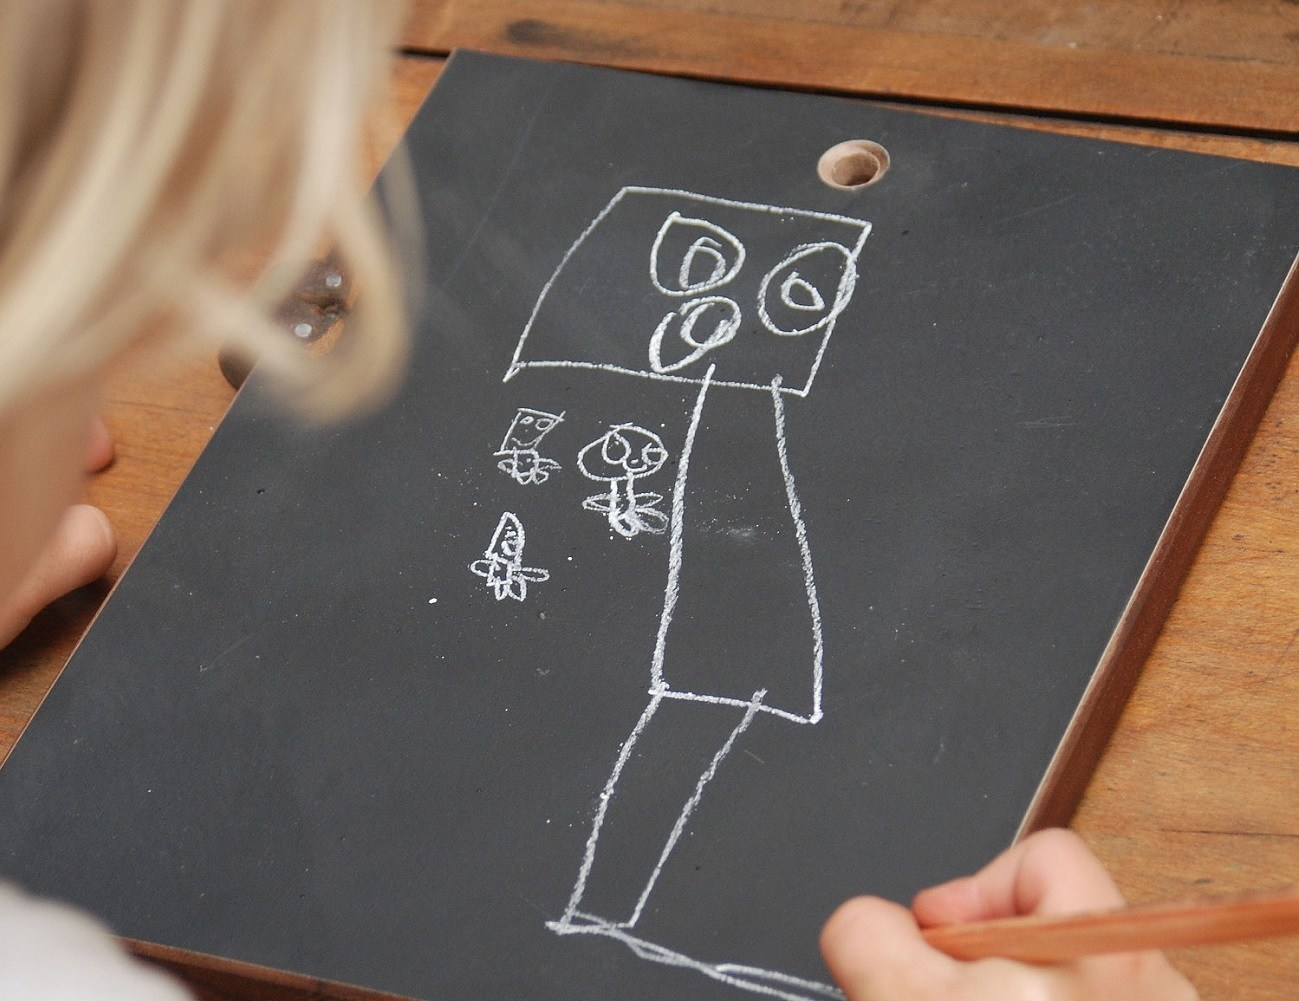 Chalk+Pad+By+Peg+And+Awl